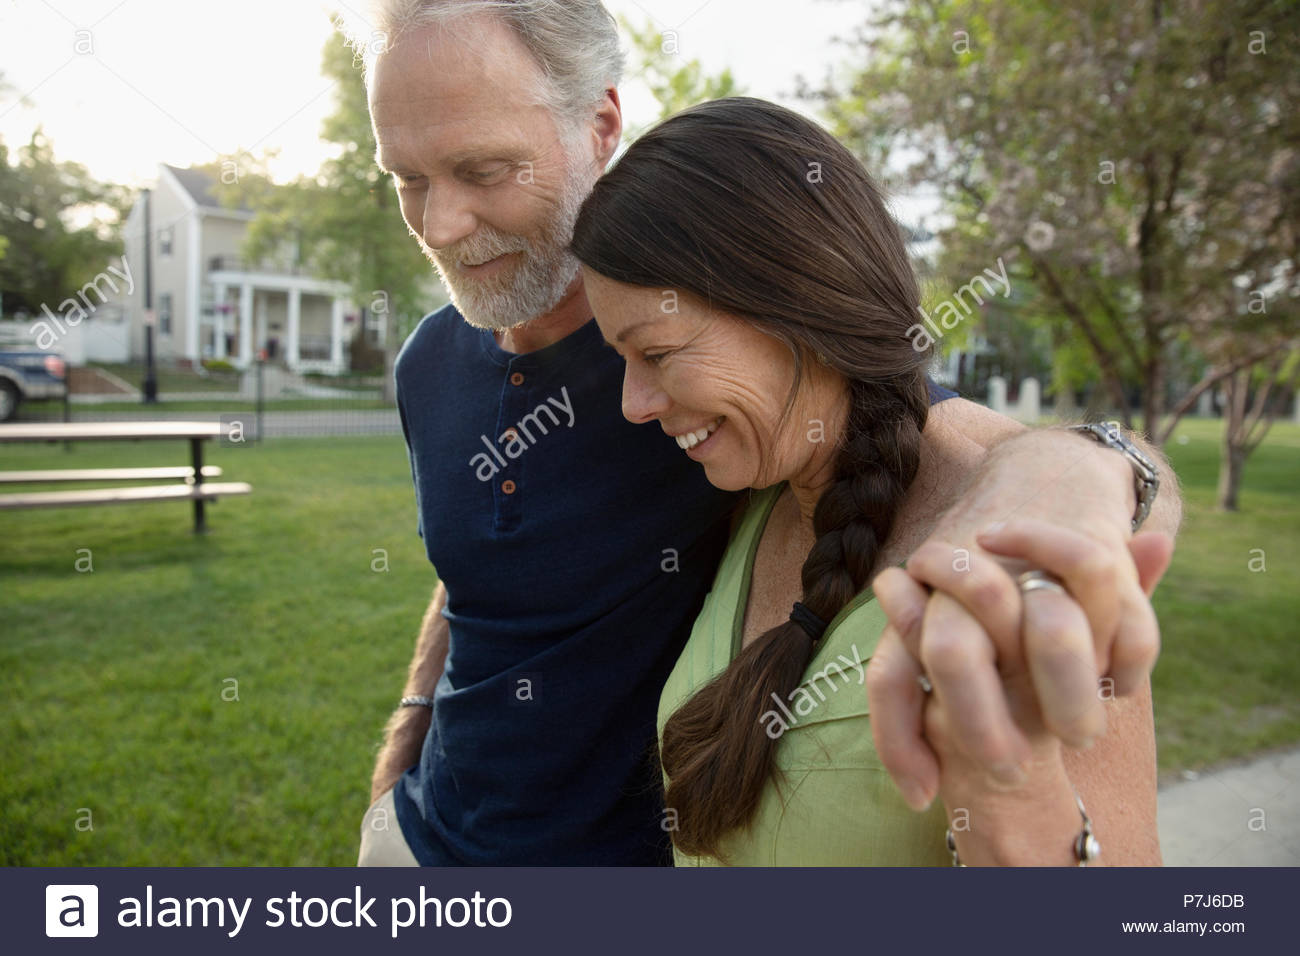 Affectionate senior couple holding hands and walking in park - Stock Image